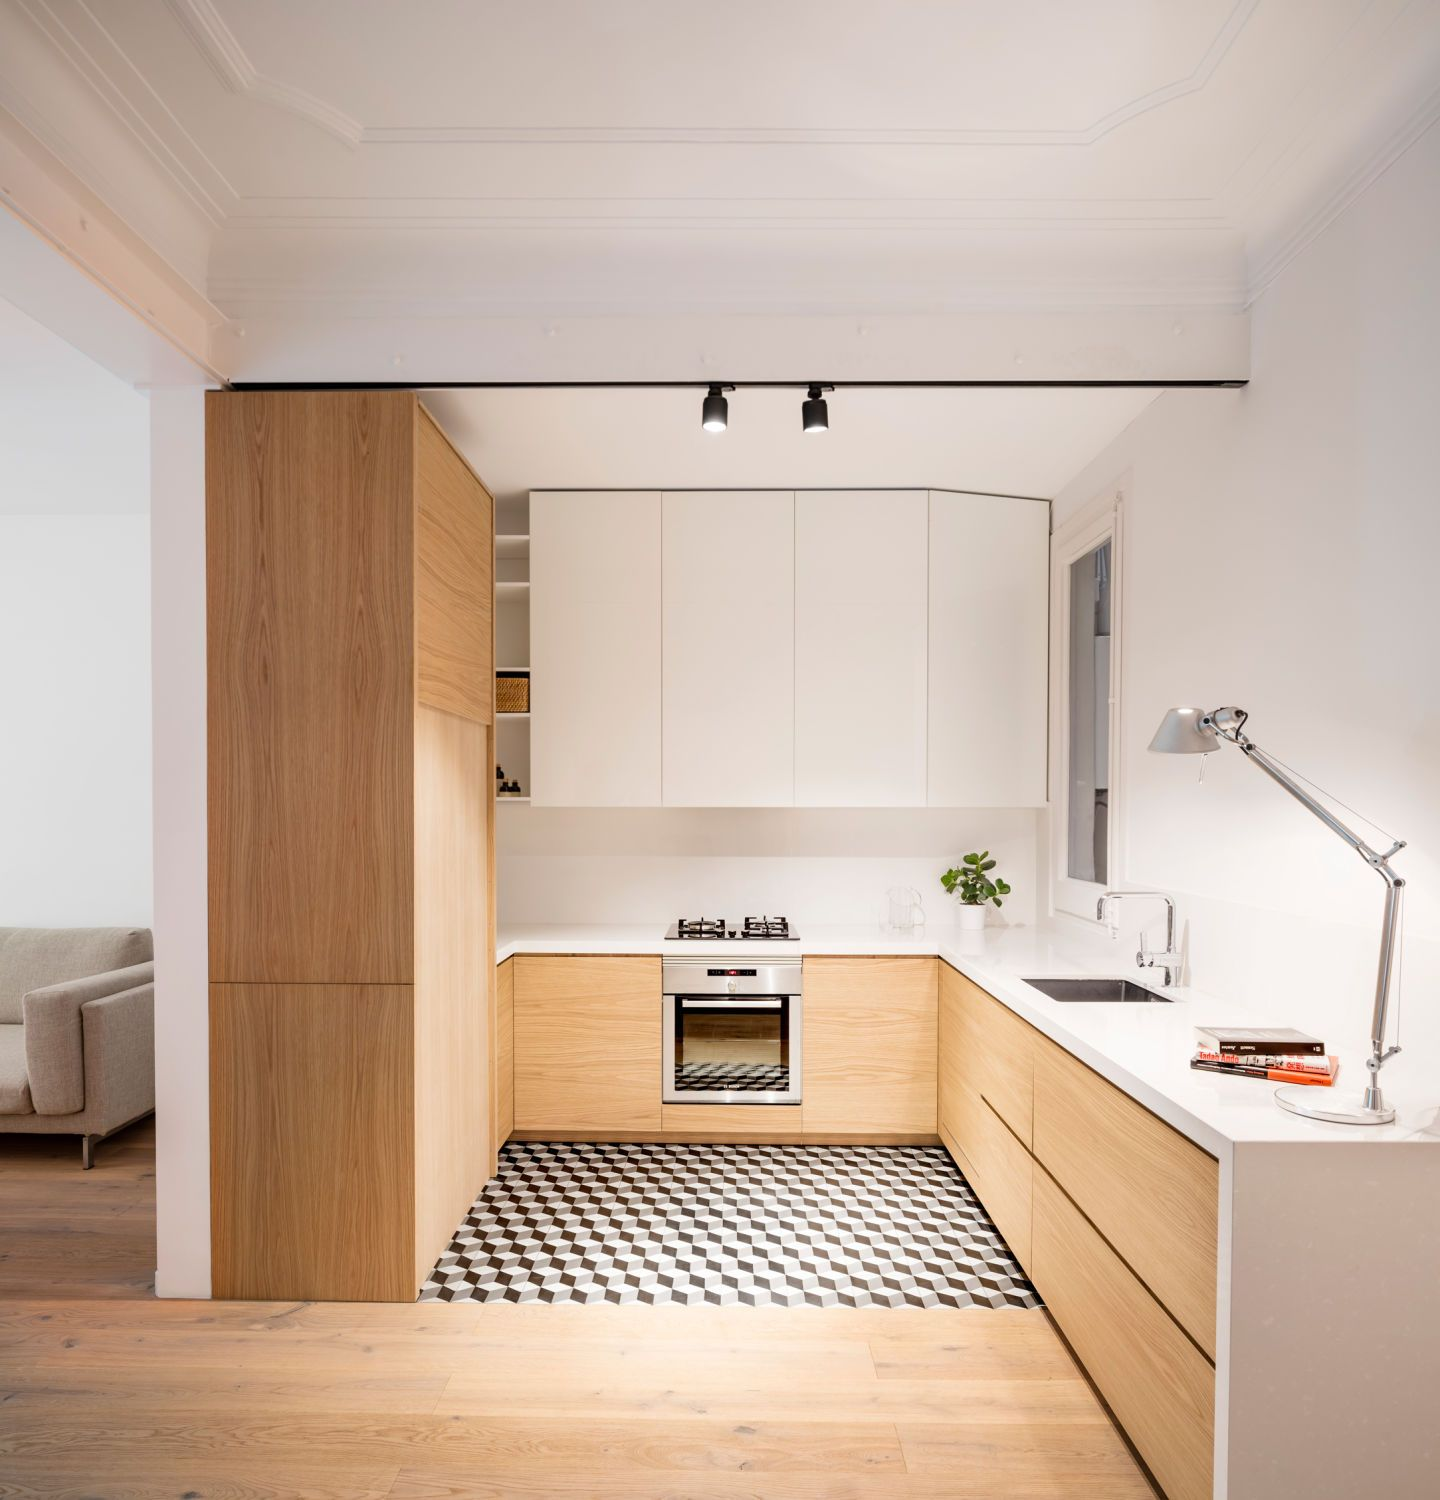 The project presents the renovation of an apartment located in a ...